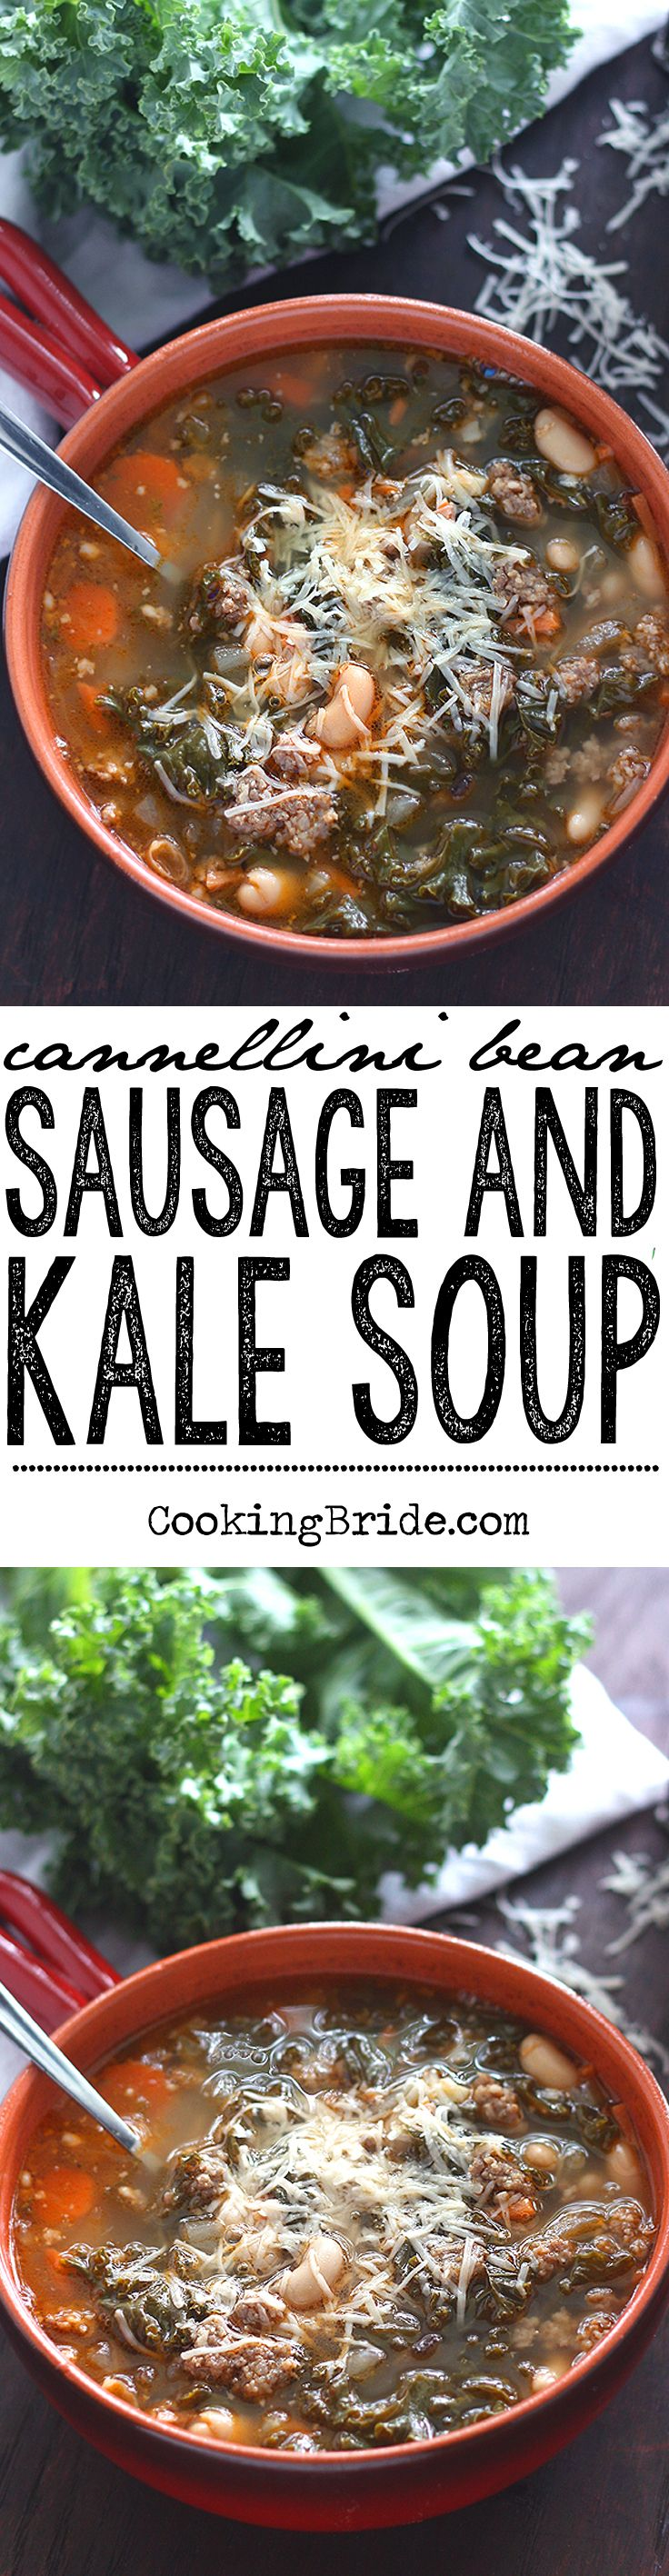 17 Best ideas about Italian Sausage Soup on Pinterest ...